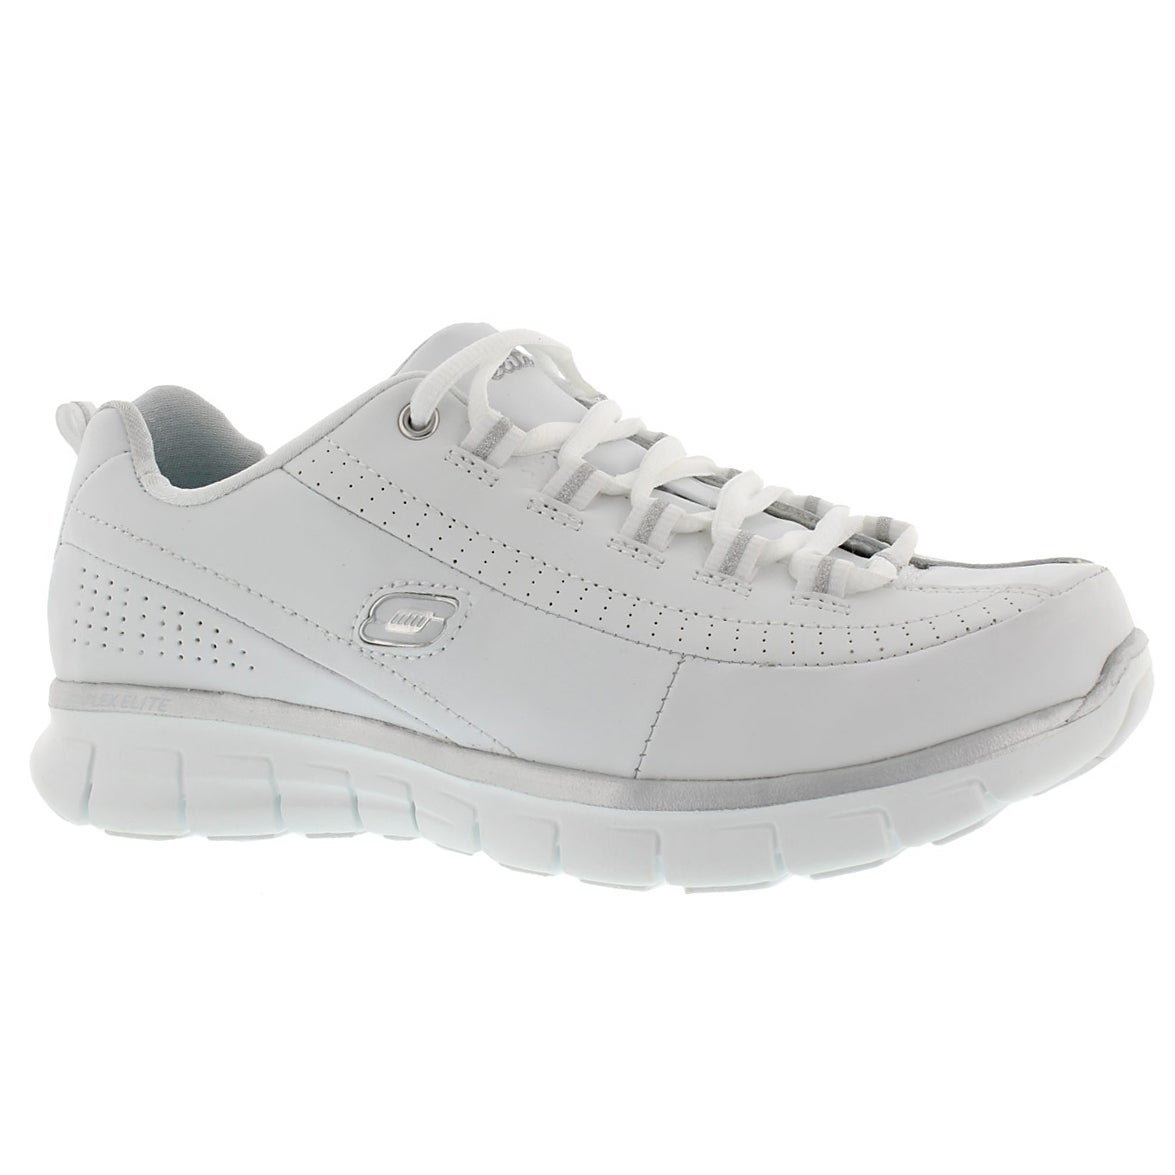 Women's ELITE STATUS white lace-up sneakers - WIDE